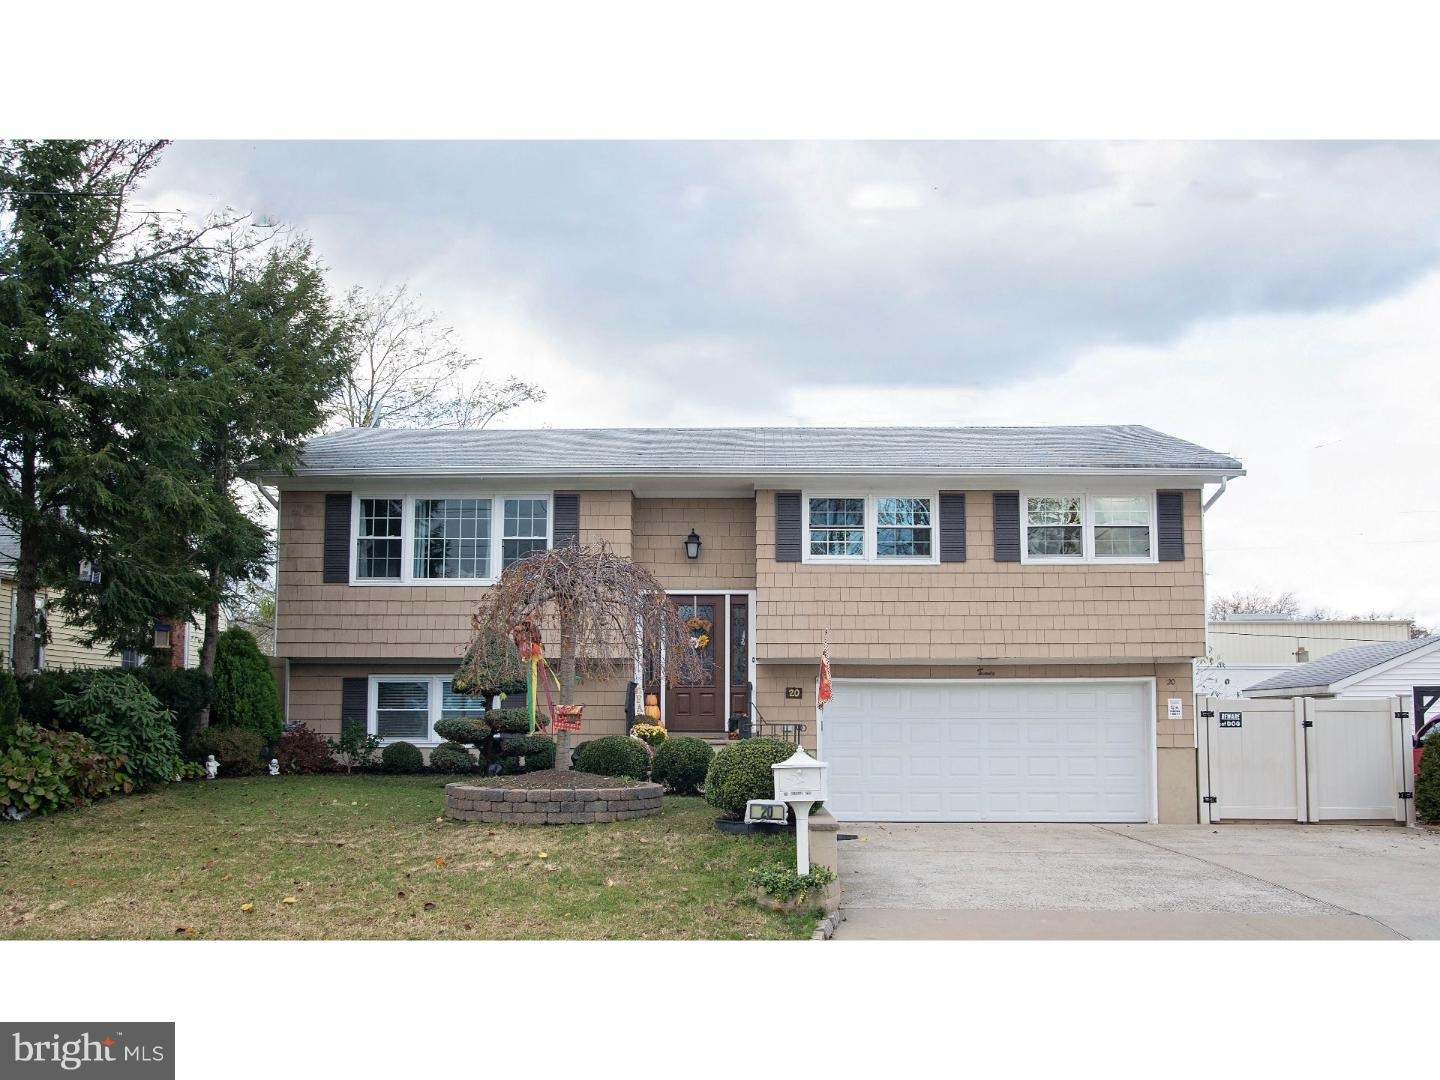 Single Family Home for Sale at 20 MONROE Street Keyport, New Jersey 07735 United States